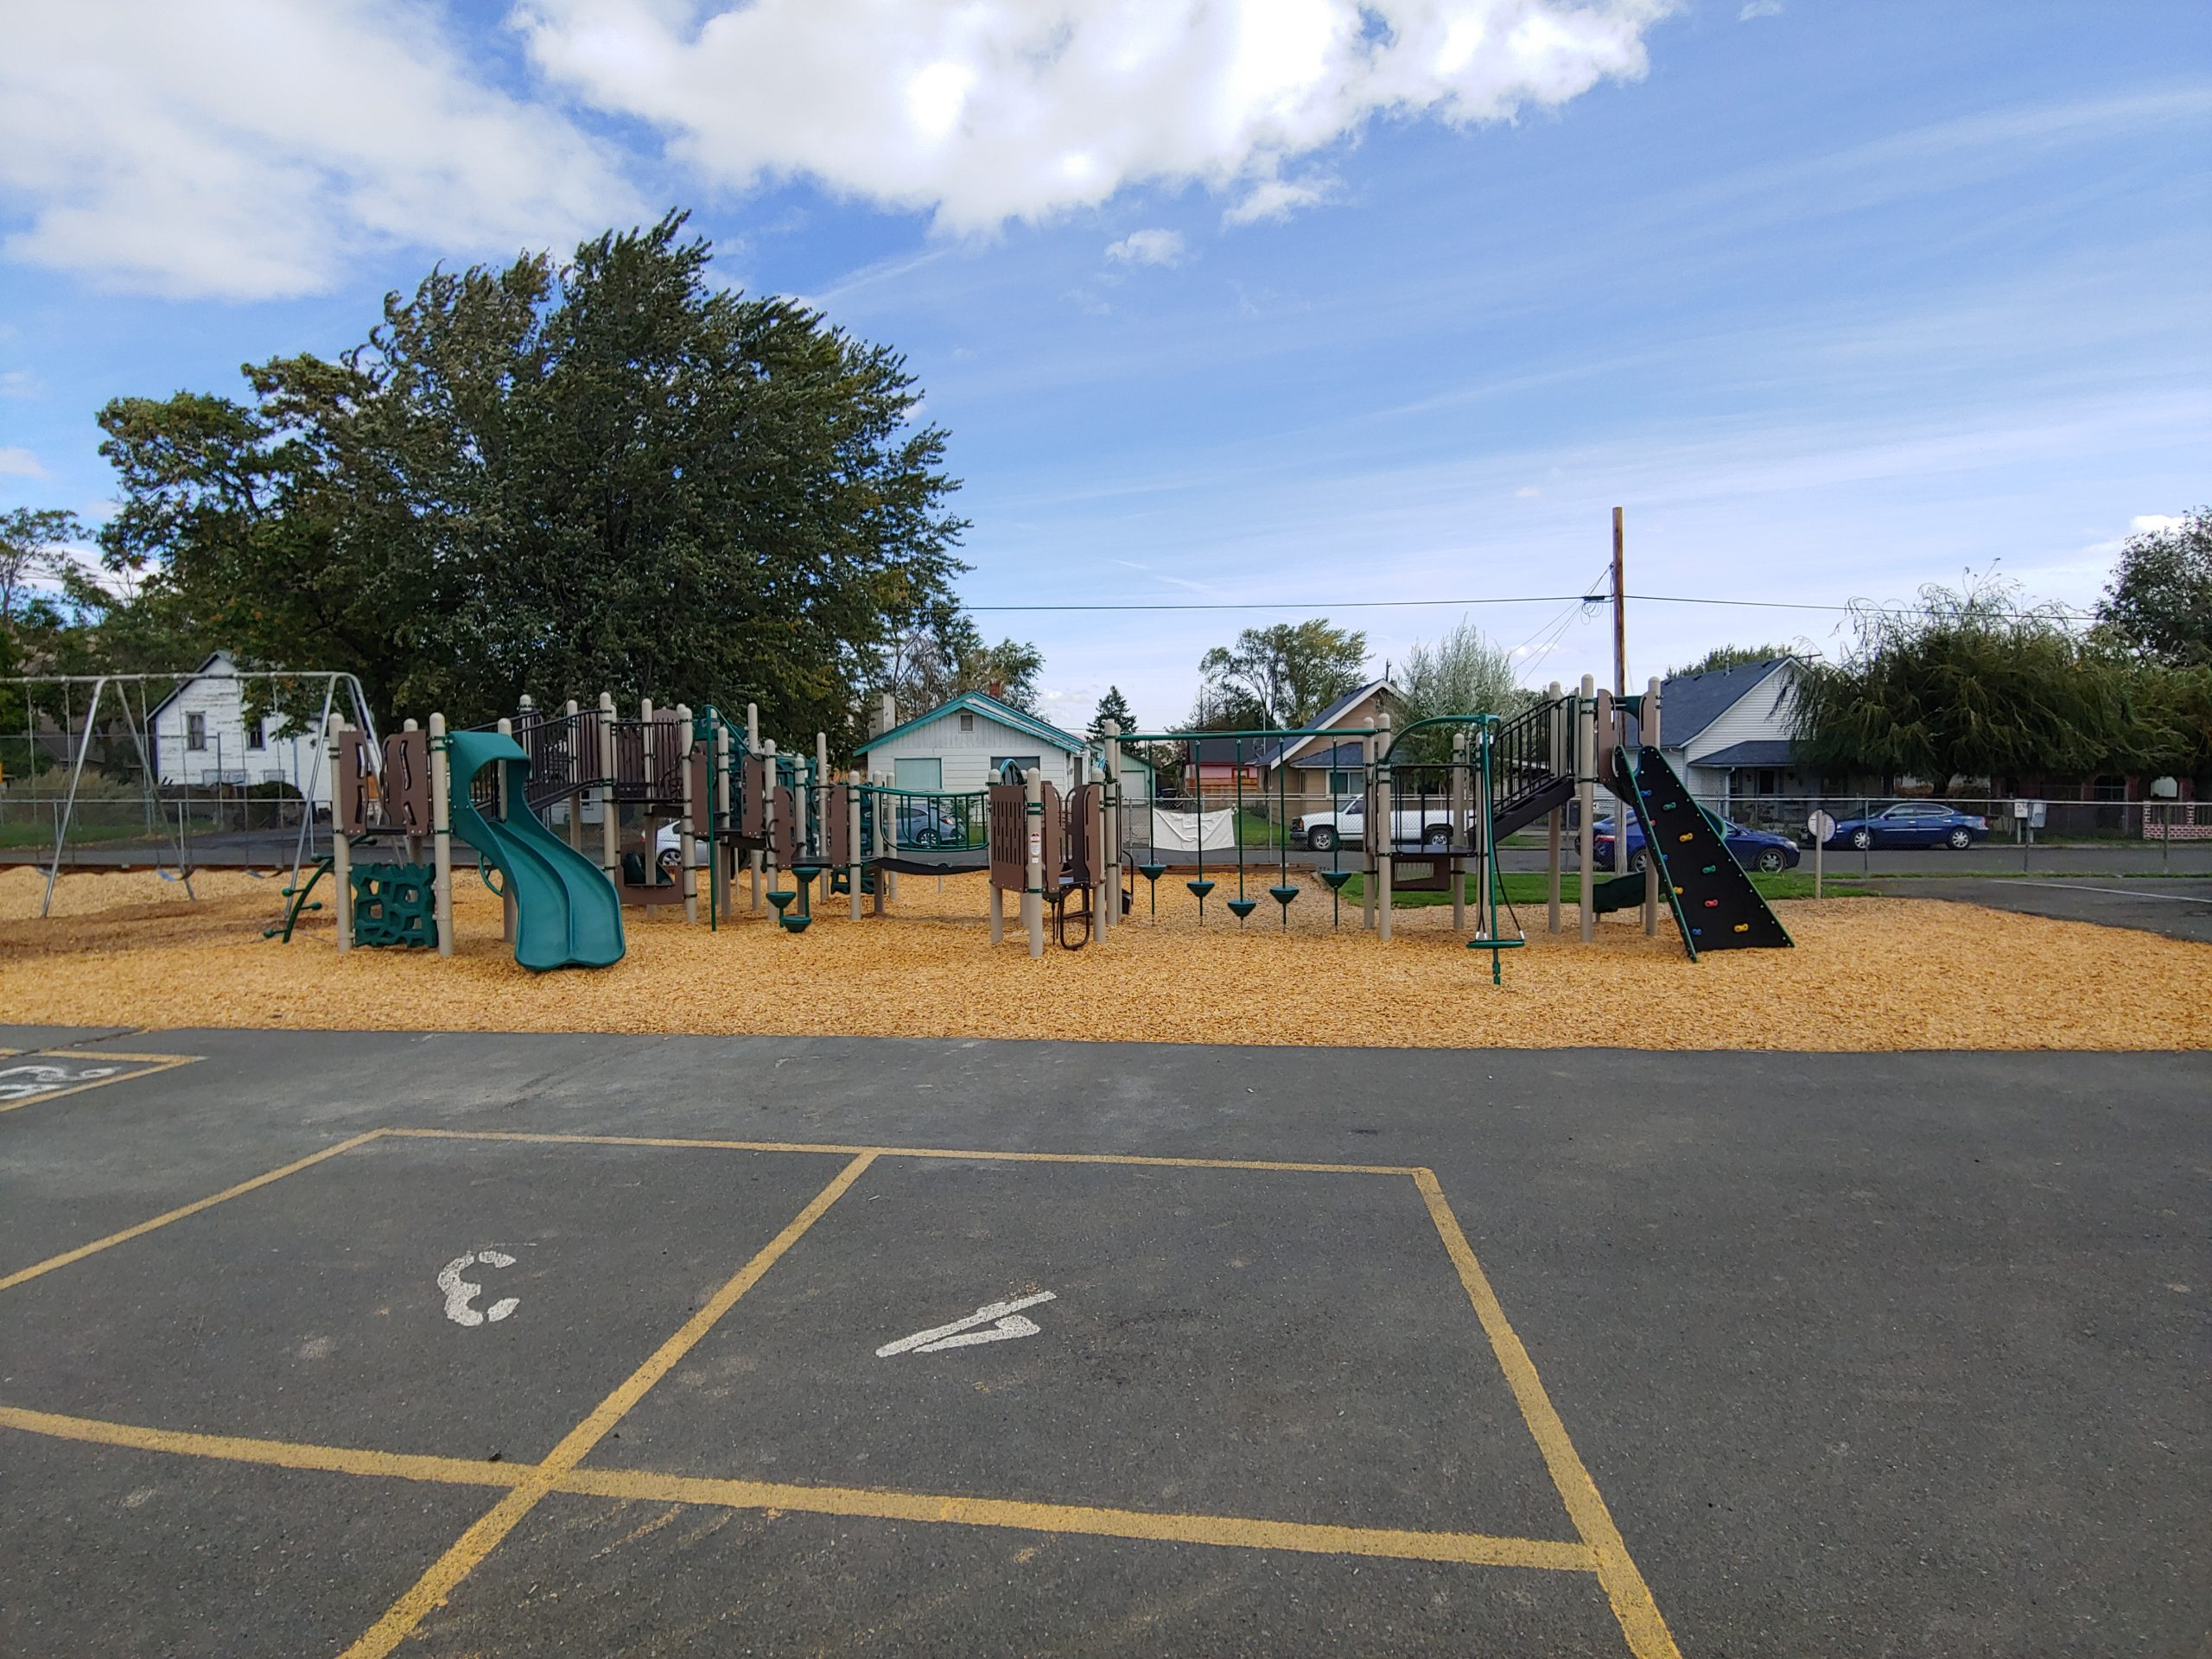 Barge-Lincoln Elementary School Playground